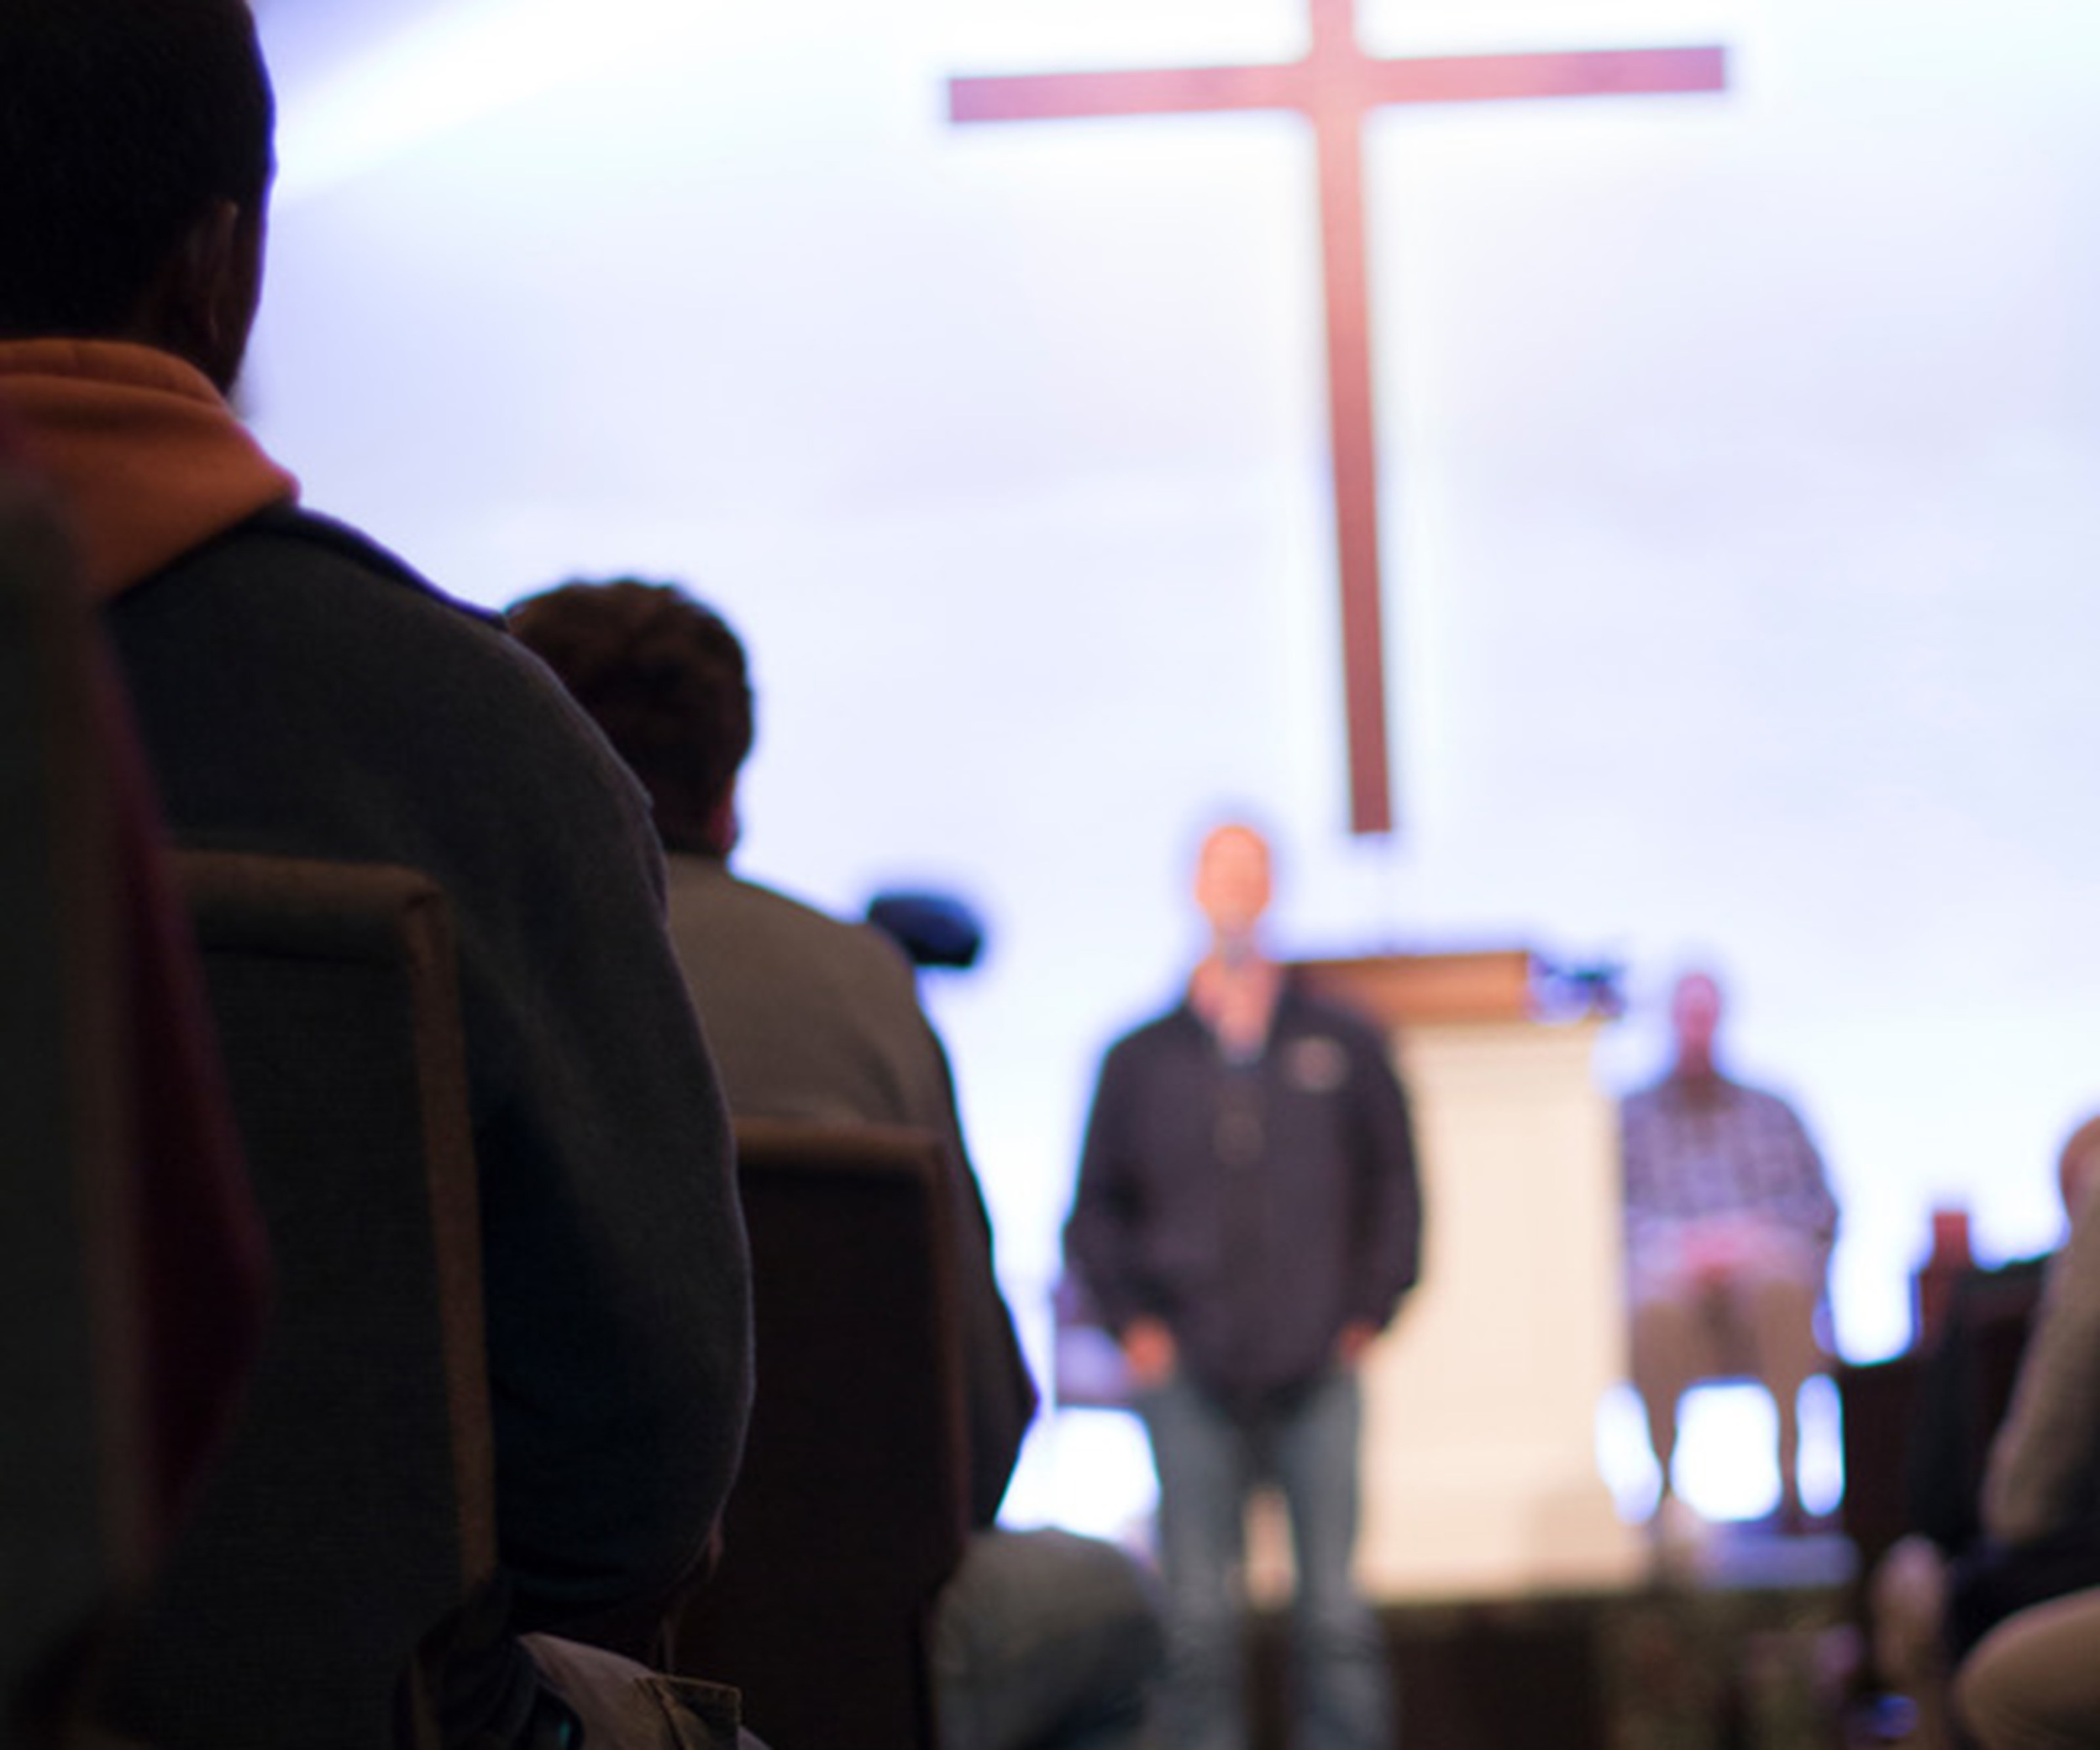 Staff often get up to testify during Chapel services